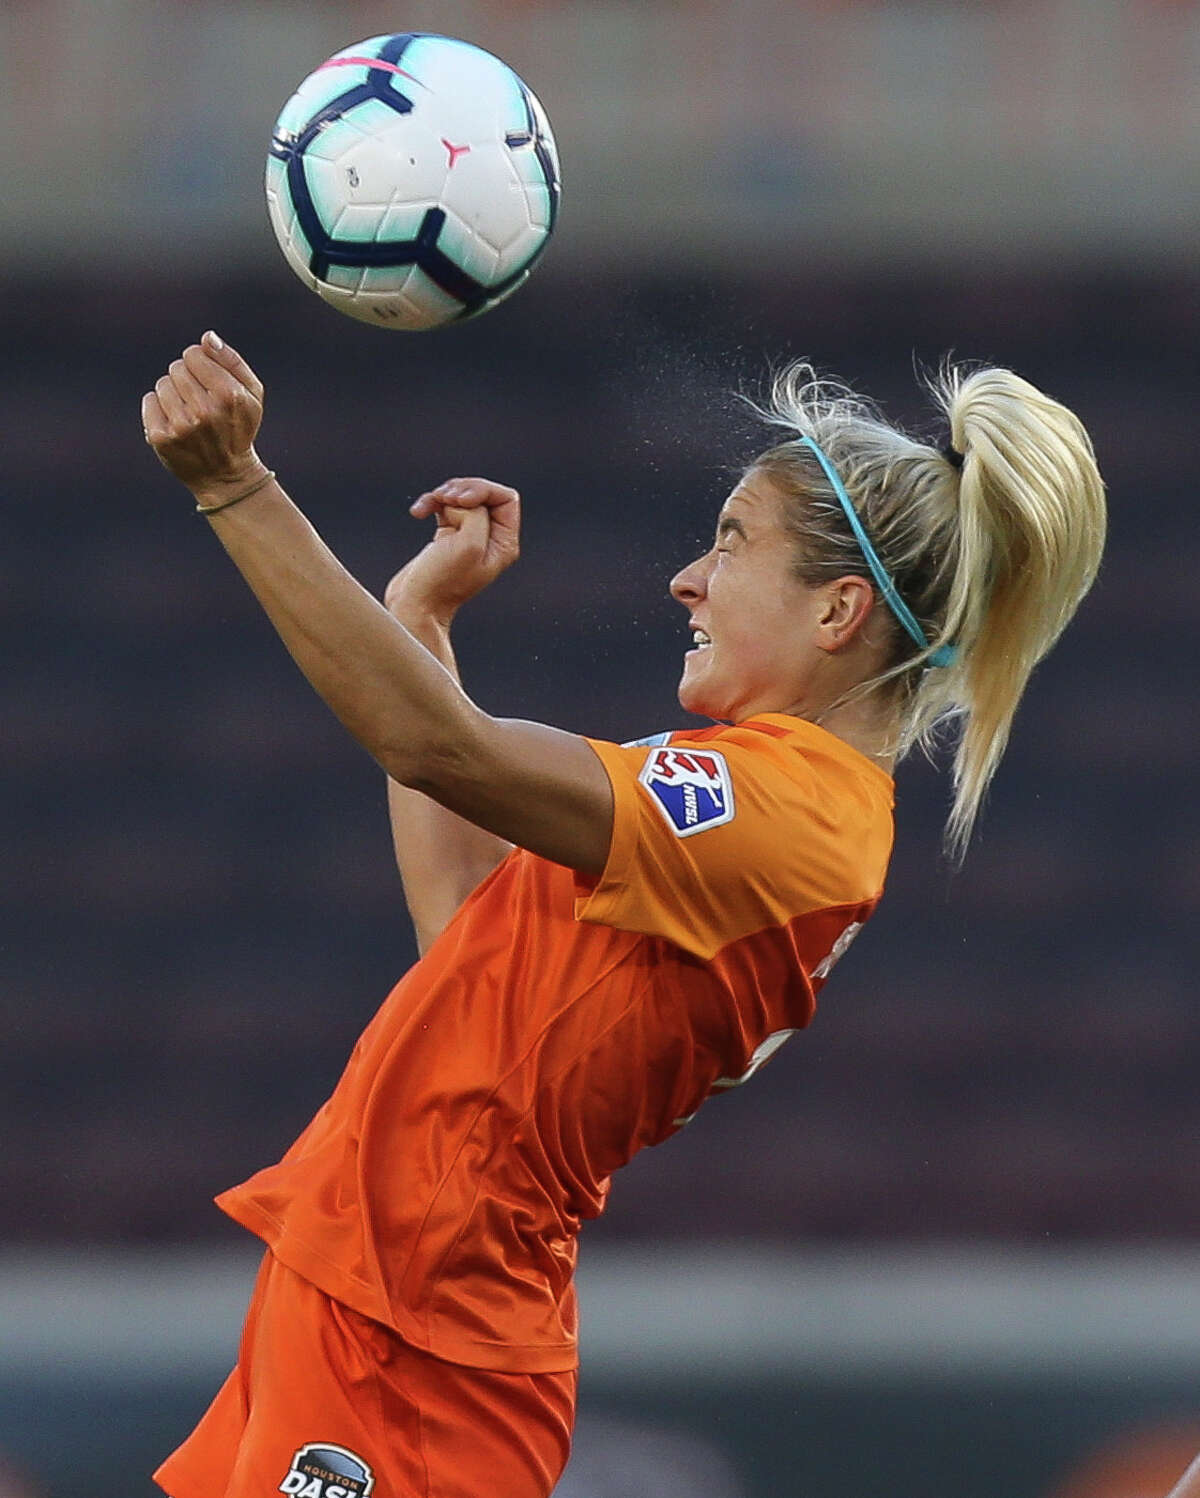 Houston Dash midfielder Kristie Mewis (19) goes up for a header during the first half of the NWSL game at BBVA Stadium on Saturday, June 15, 2019, in Houston.